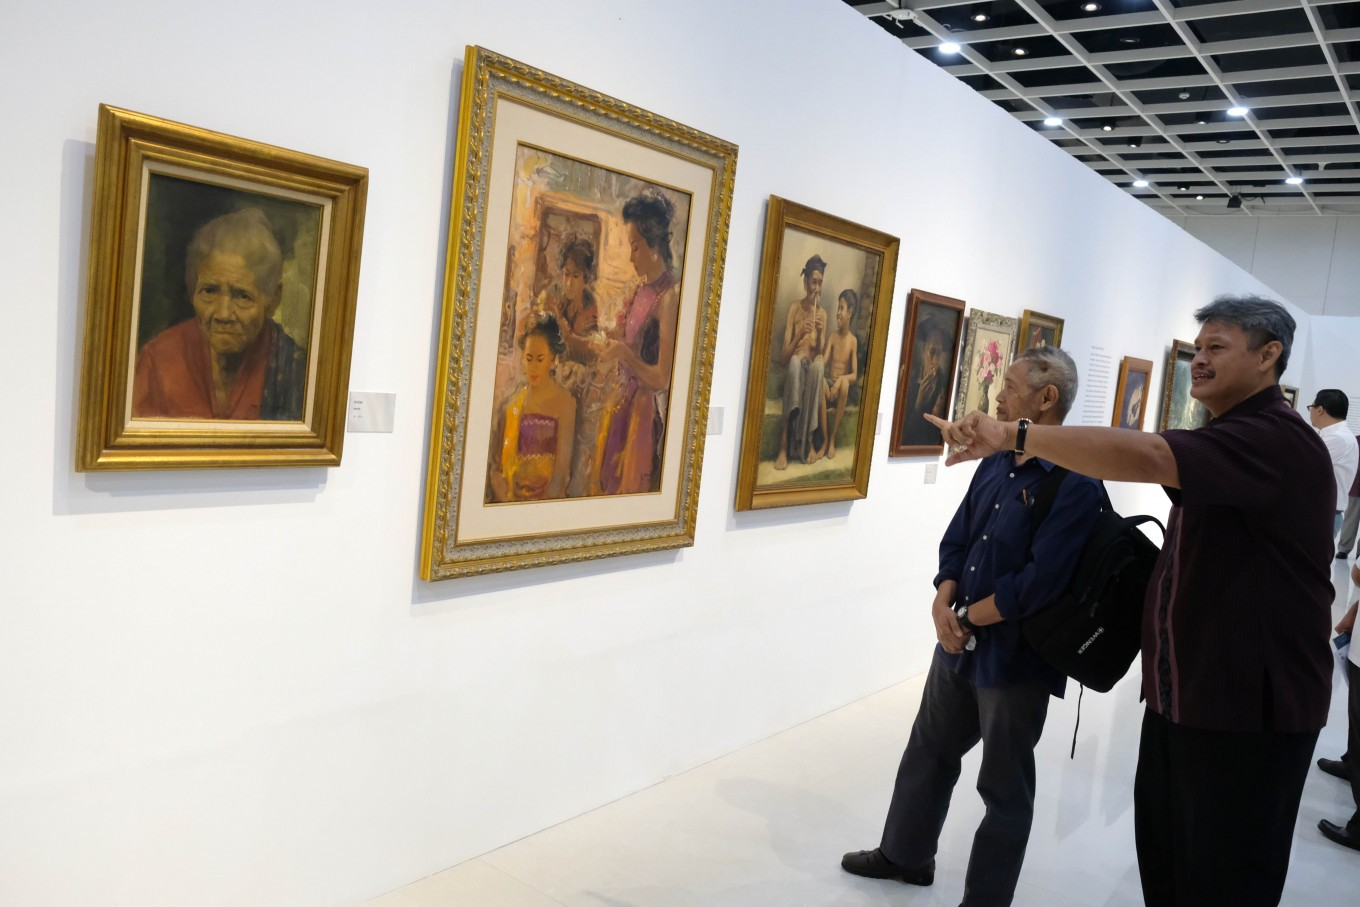 Real or fake? Indonesia's art world reality